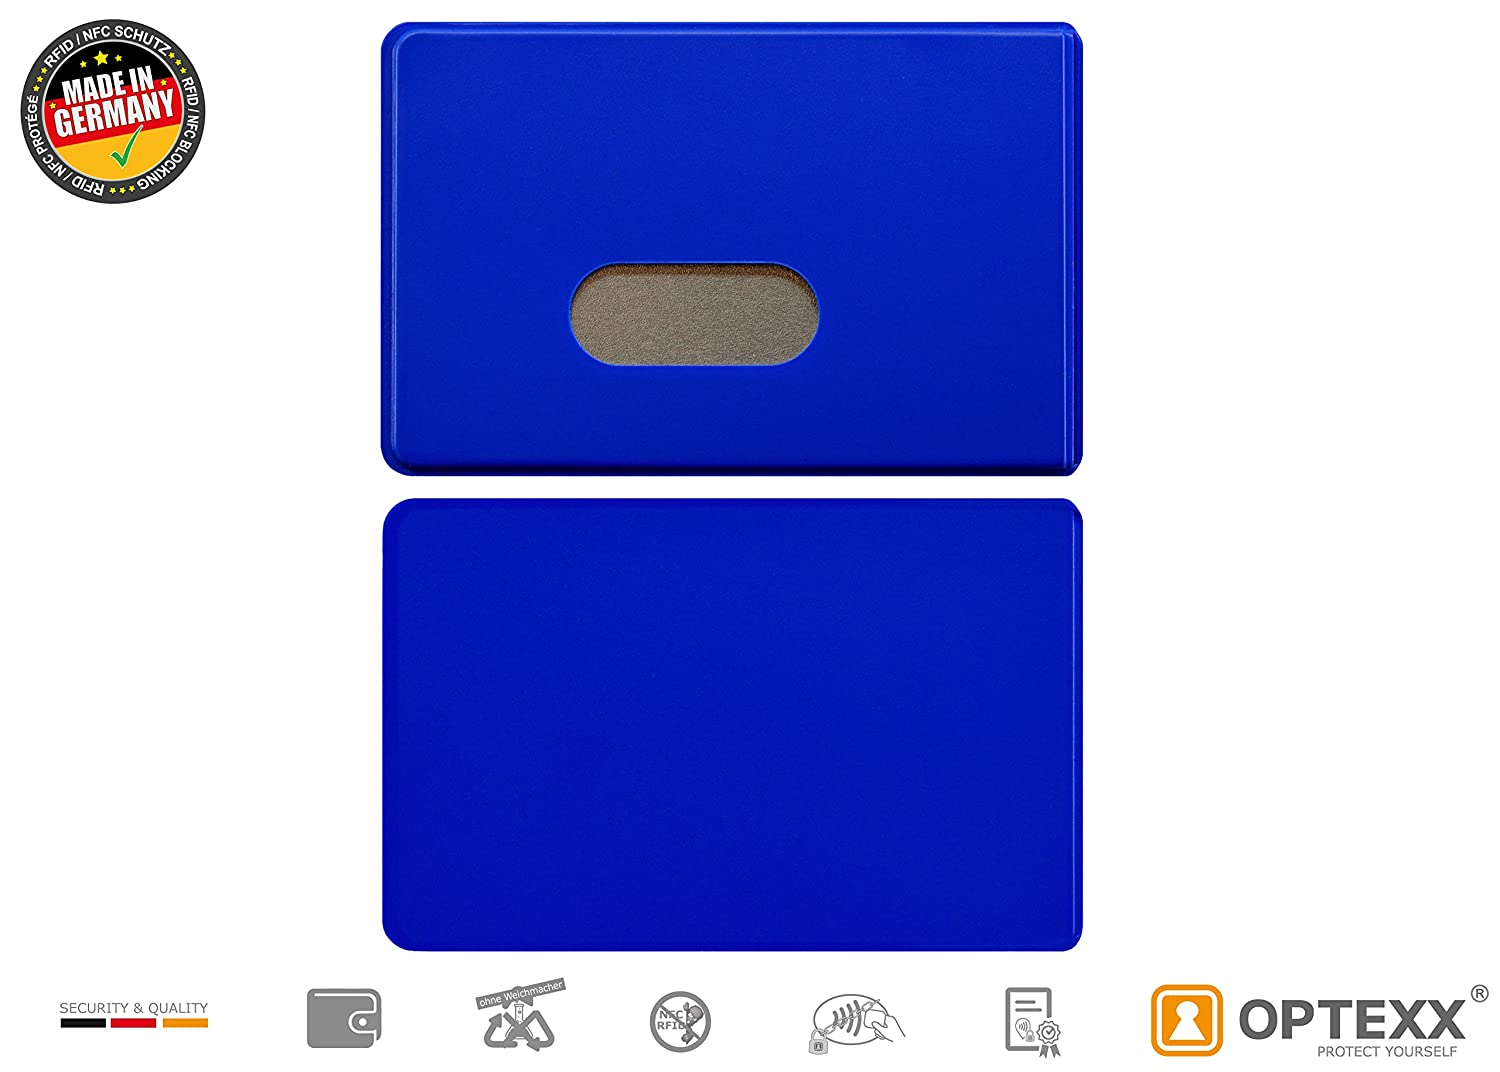 for credit//debit cards wallet Fred personal ID card case RFID protective case hard plastic case RFID blocker blue RFID chips blocker OPTEXX/® pack of 3